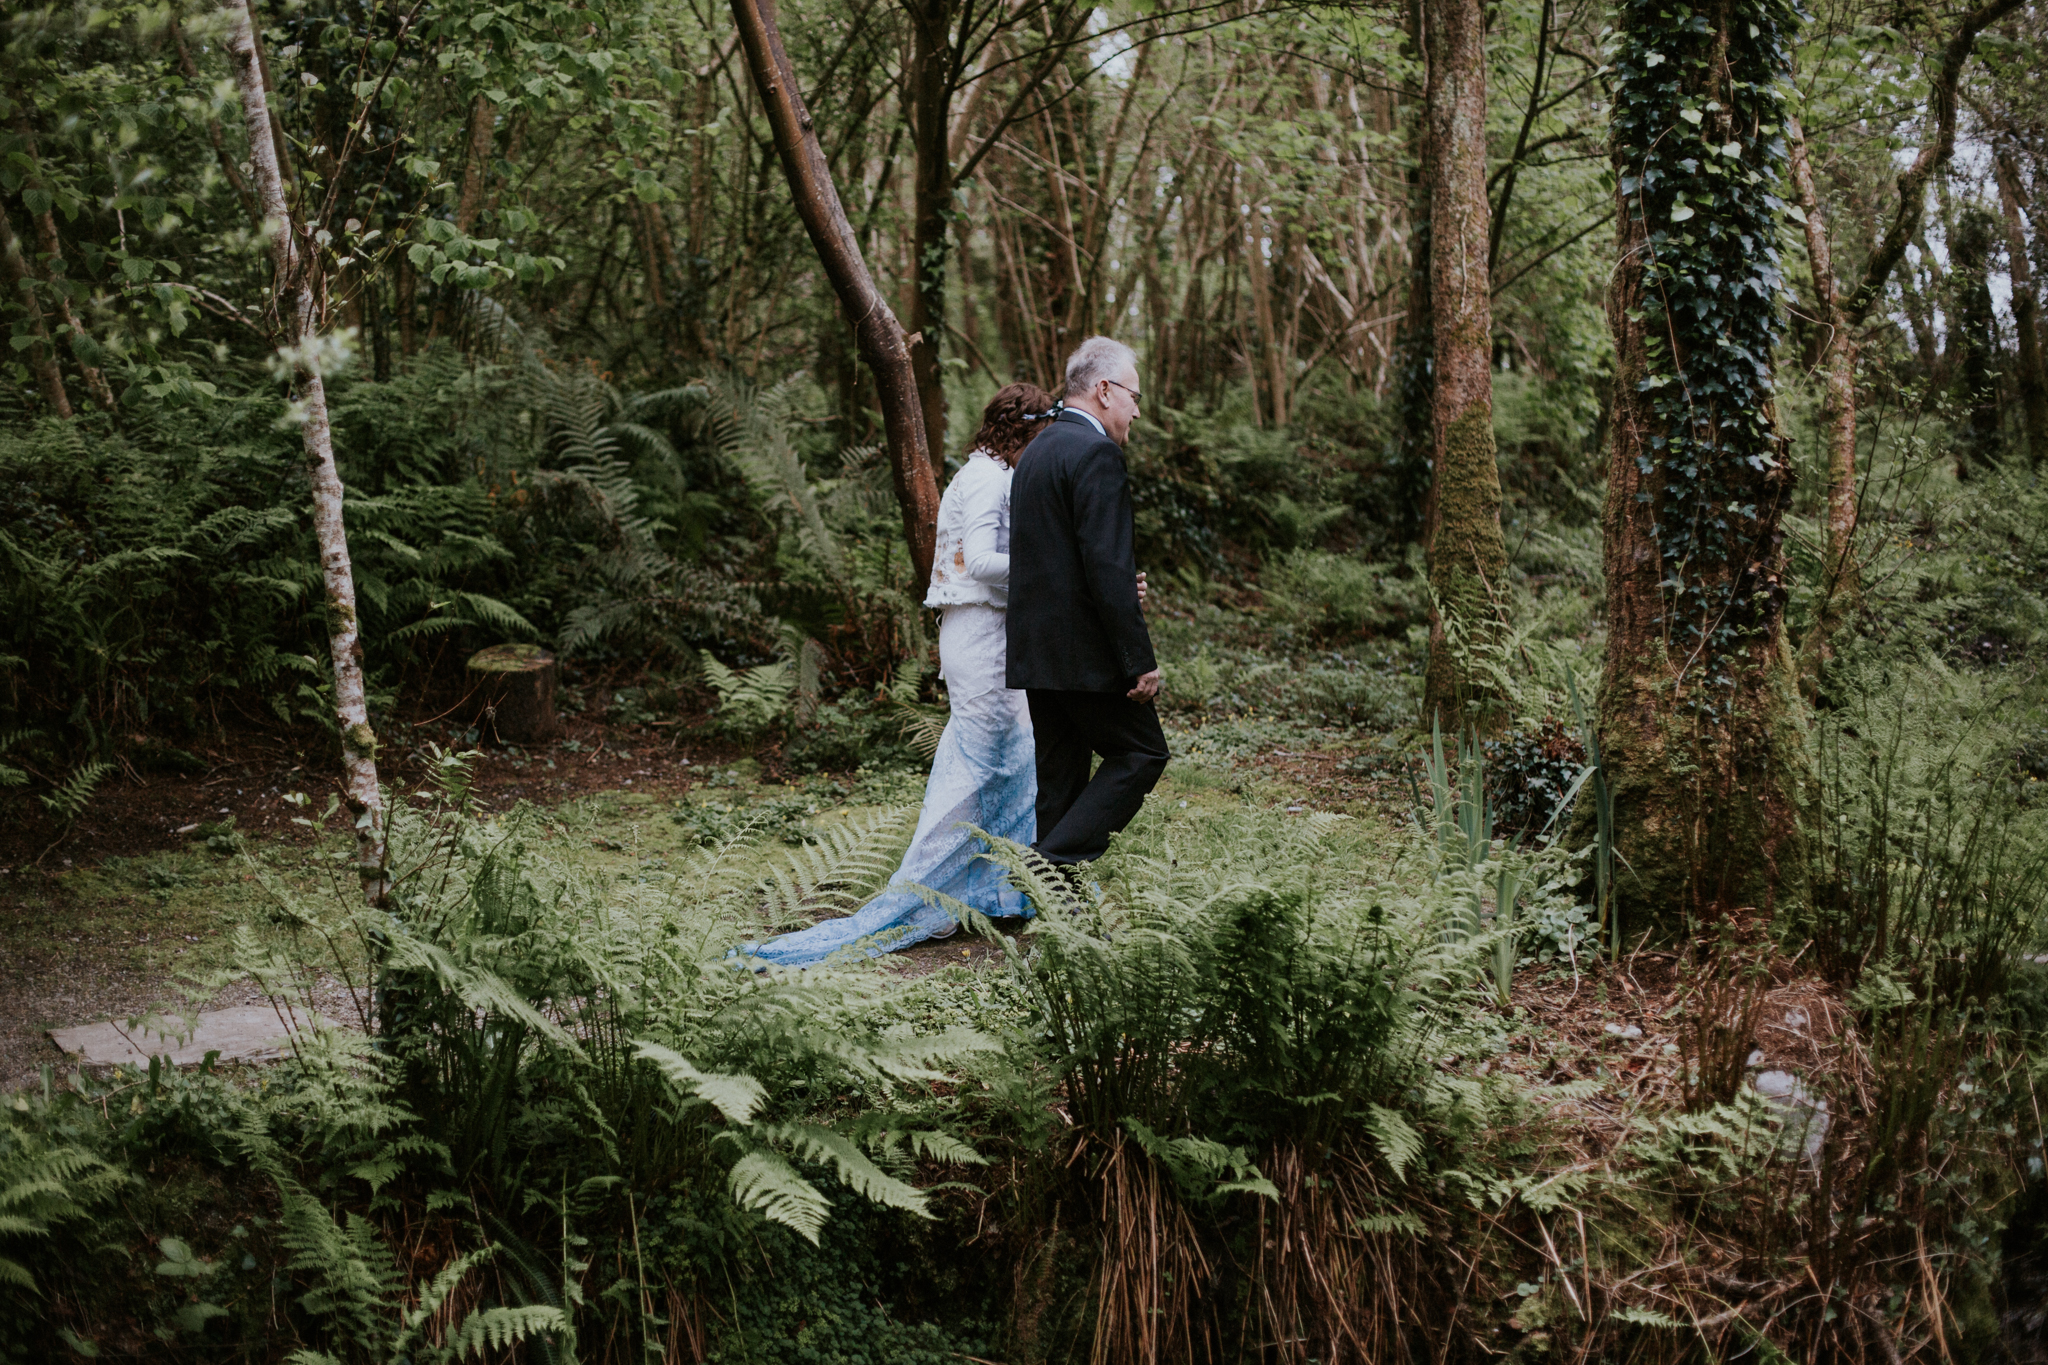 The boho bride is walking with her father to the altar at the Inish Beg Estate in Ireland